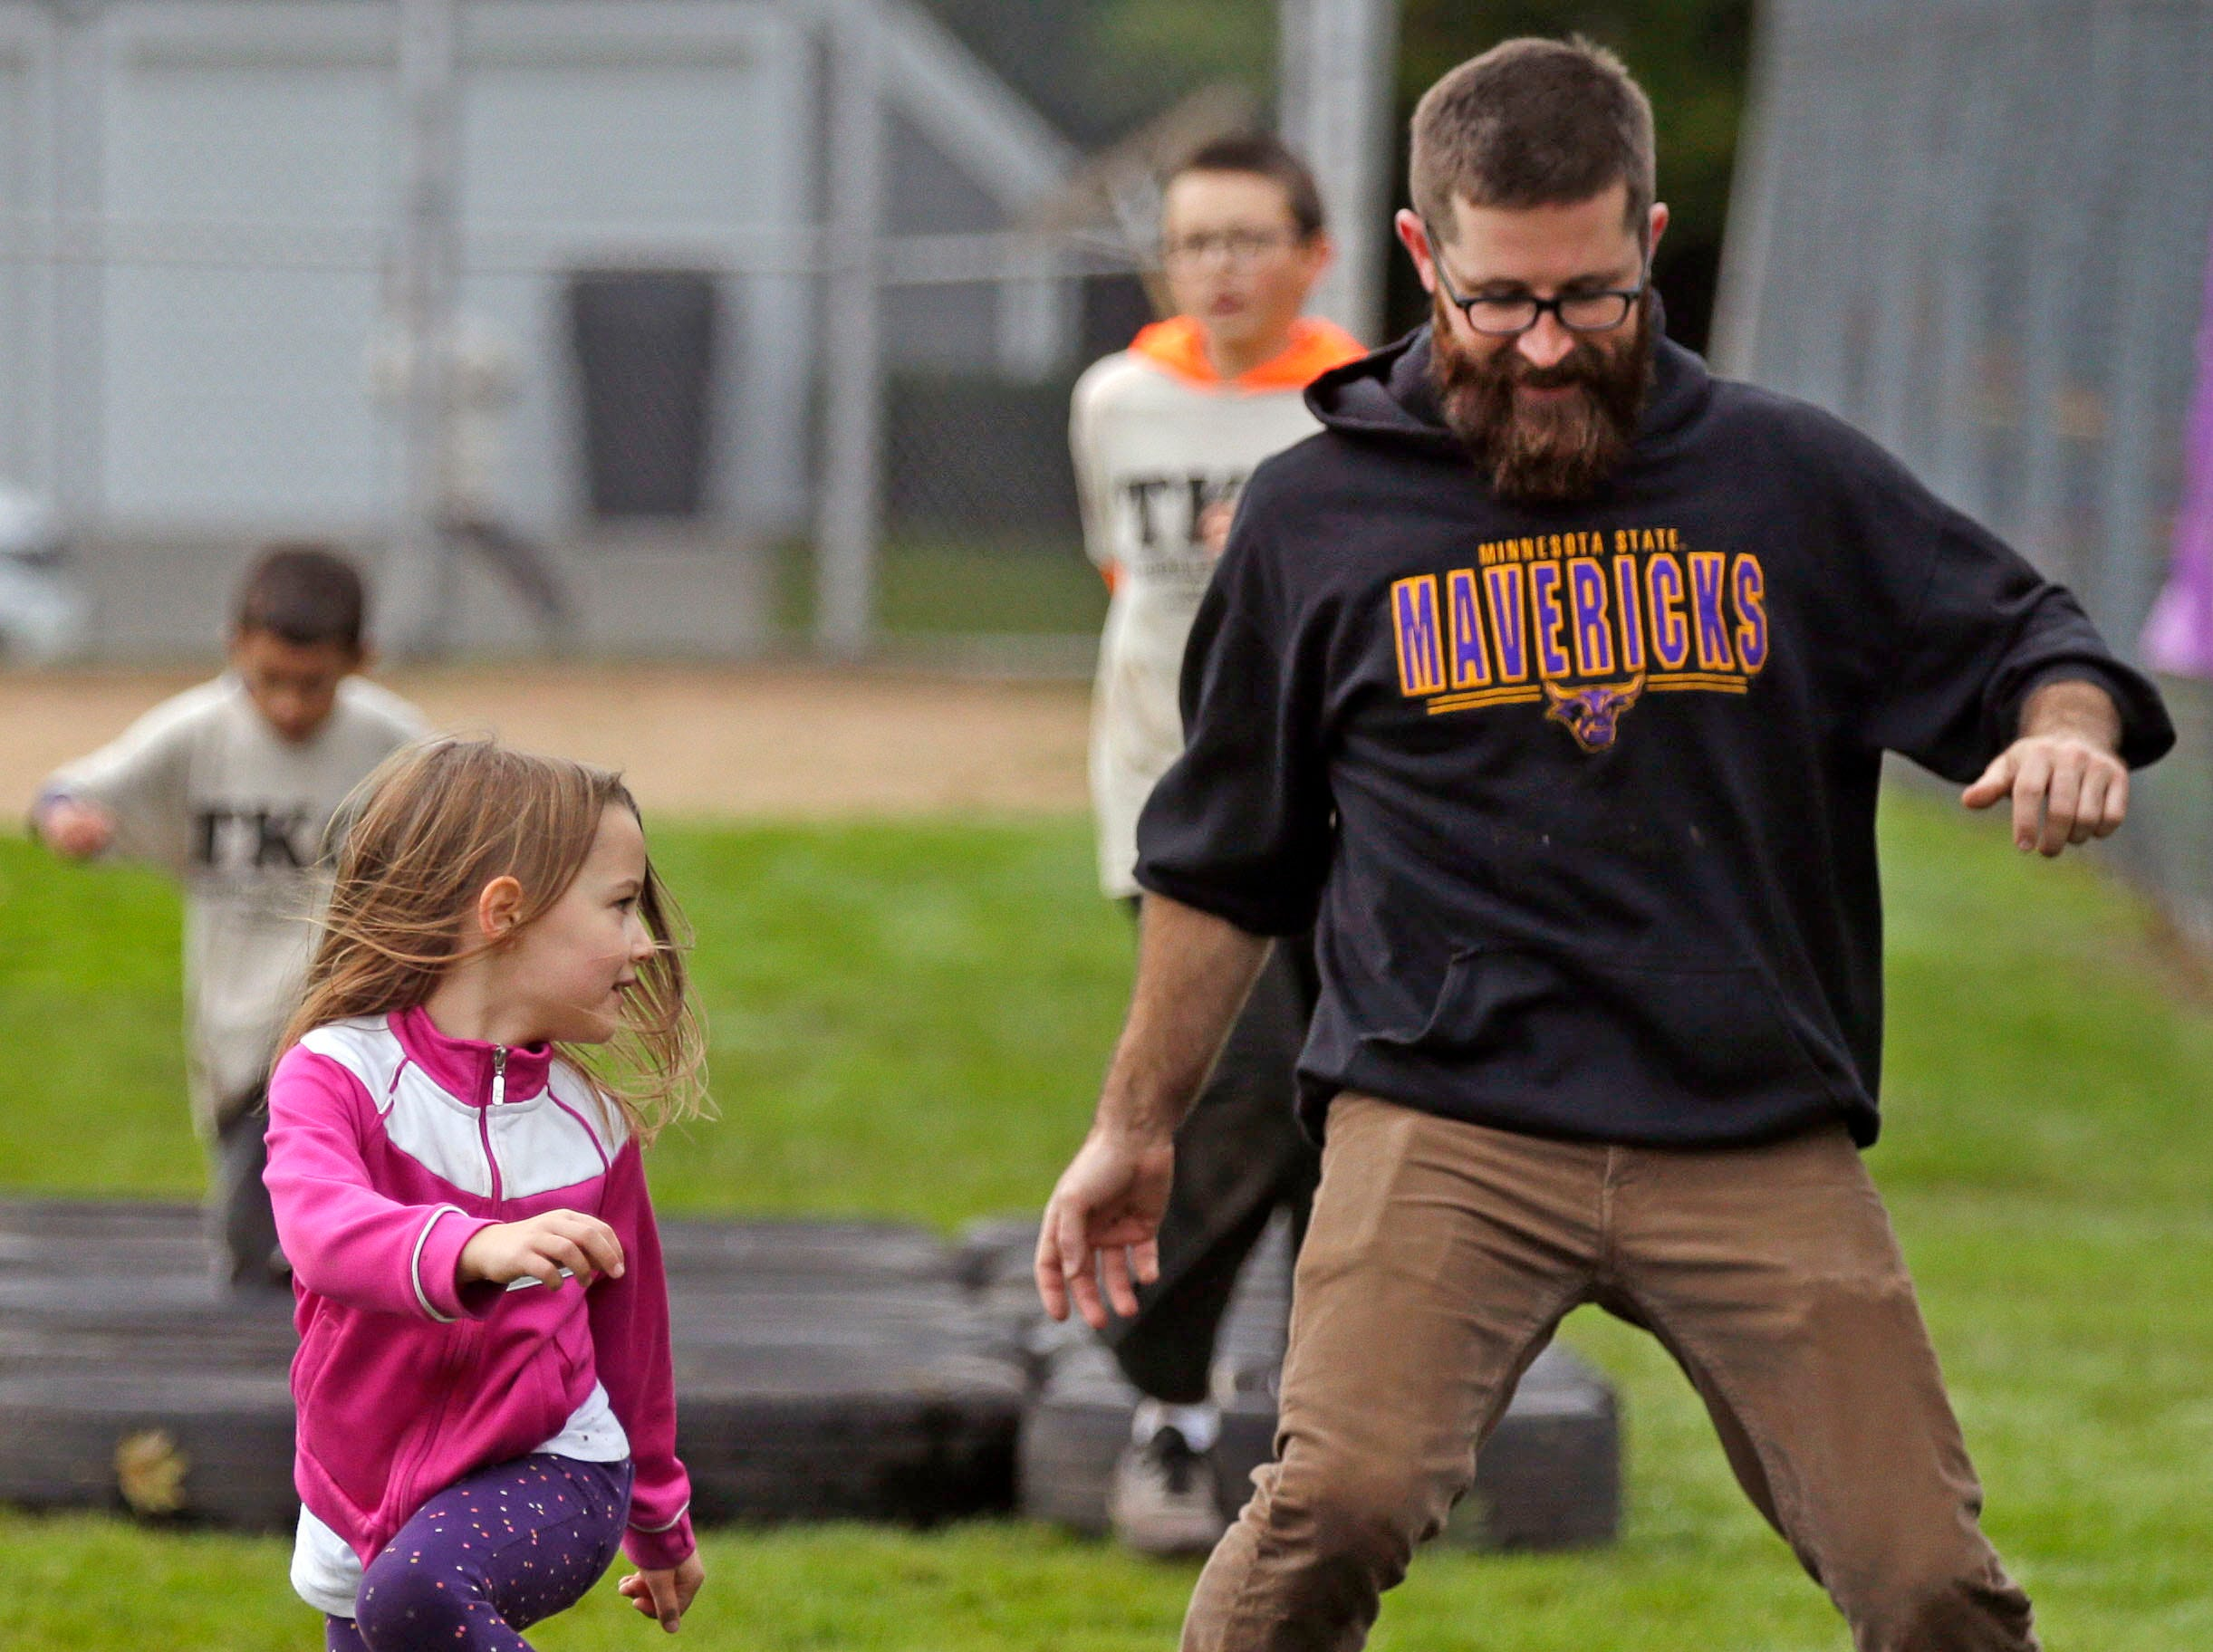 Evelyn Daily keeps an eye on her father, Nate, as they tackle an obstacle during the Essity Fox Valley Tough Kid Challenge Saturday, October 6, 2018, at Highlands Elementary School in Appleton, Wis. The event raised funds for Physical Education Departments in Appleton.